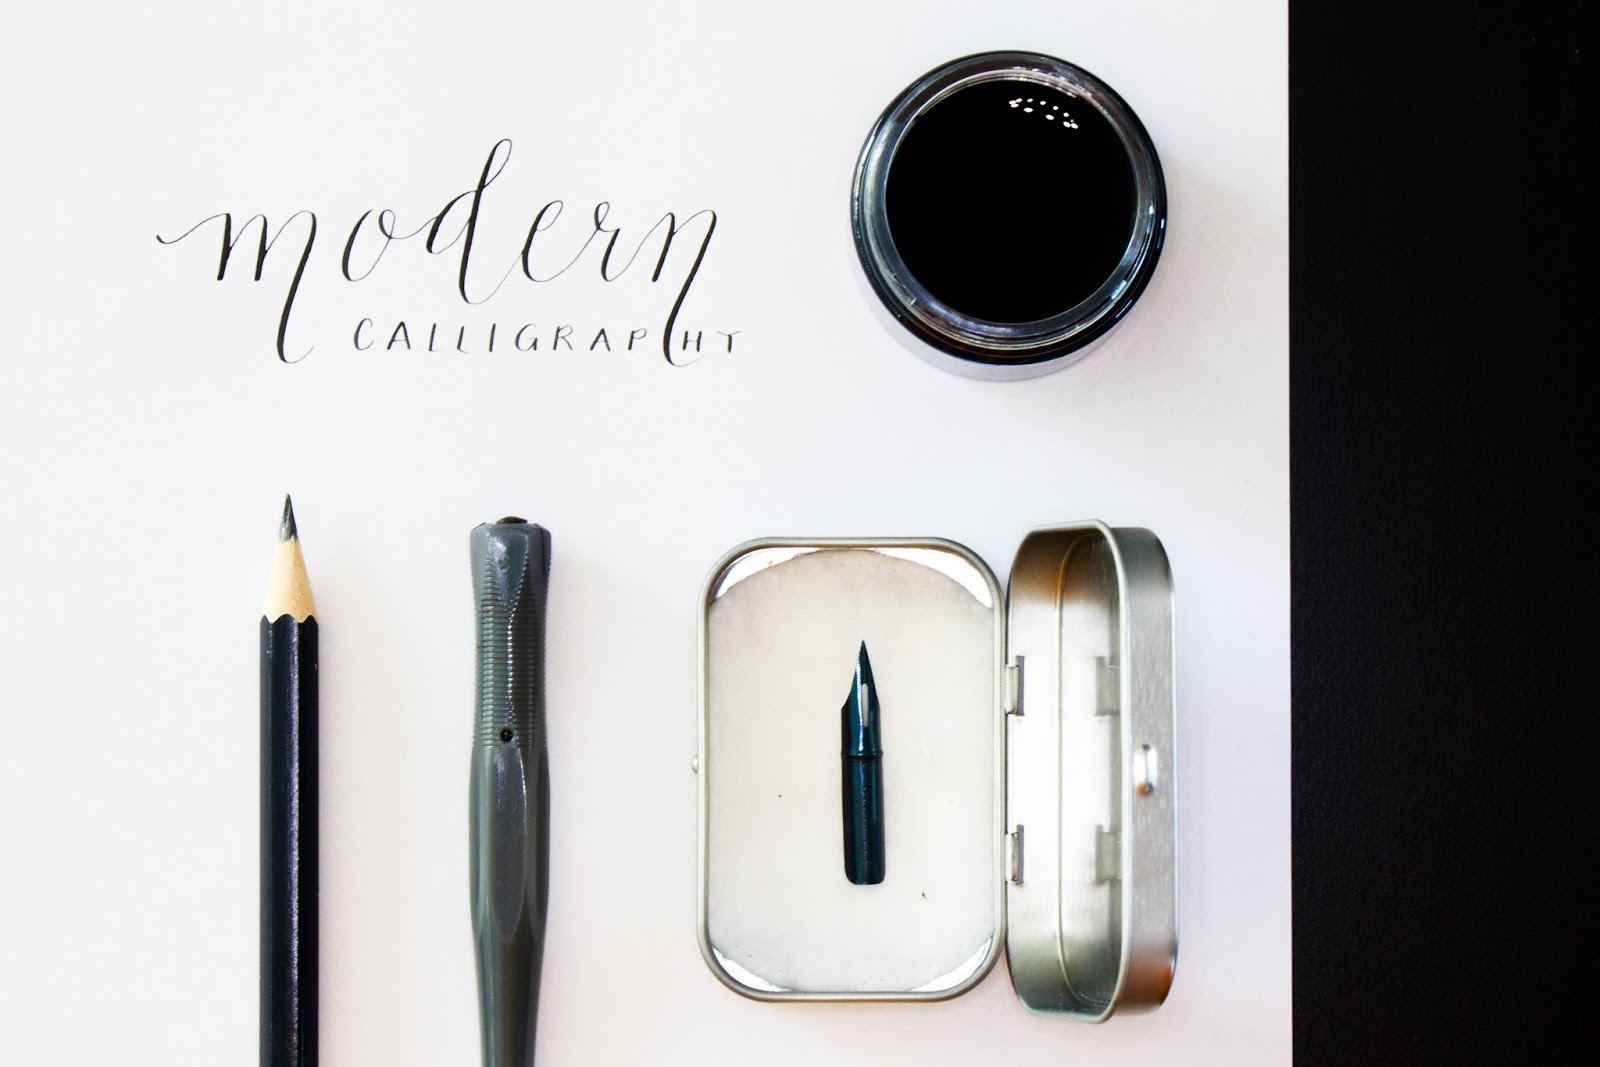 Eula sleeps workshop report modern calligraphy with niftynibsph